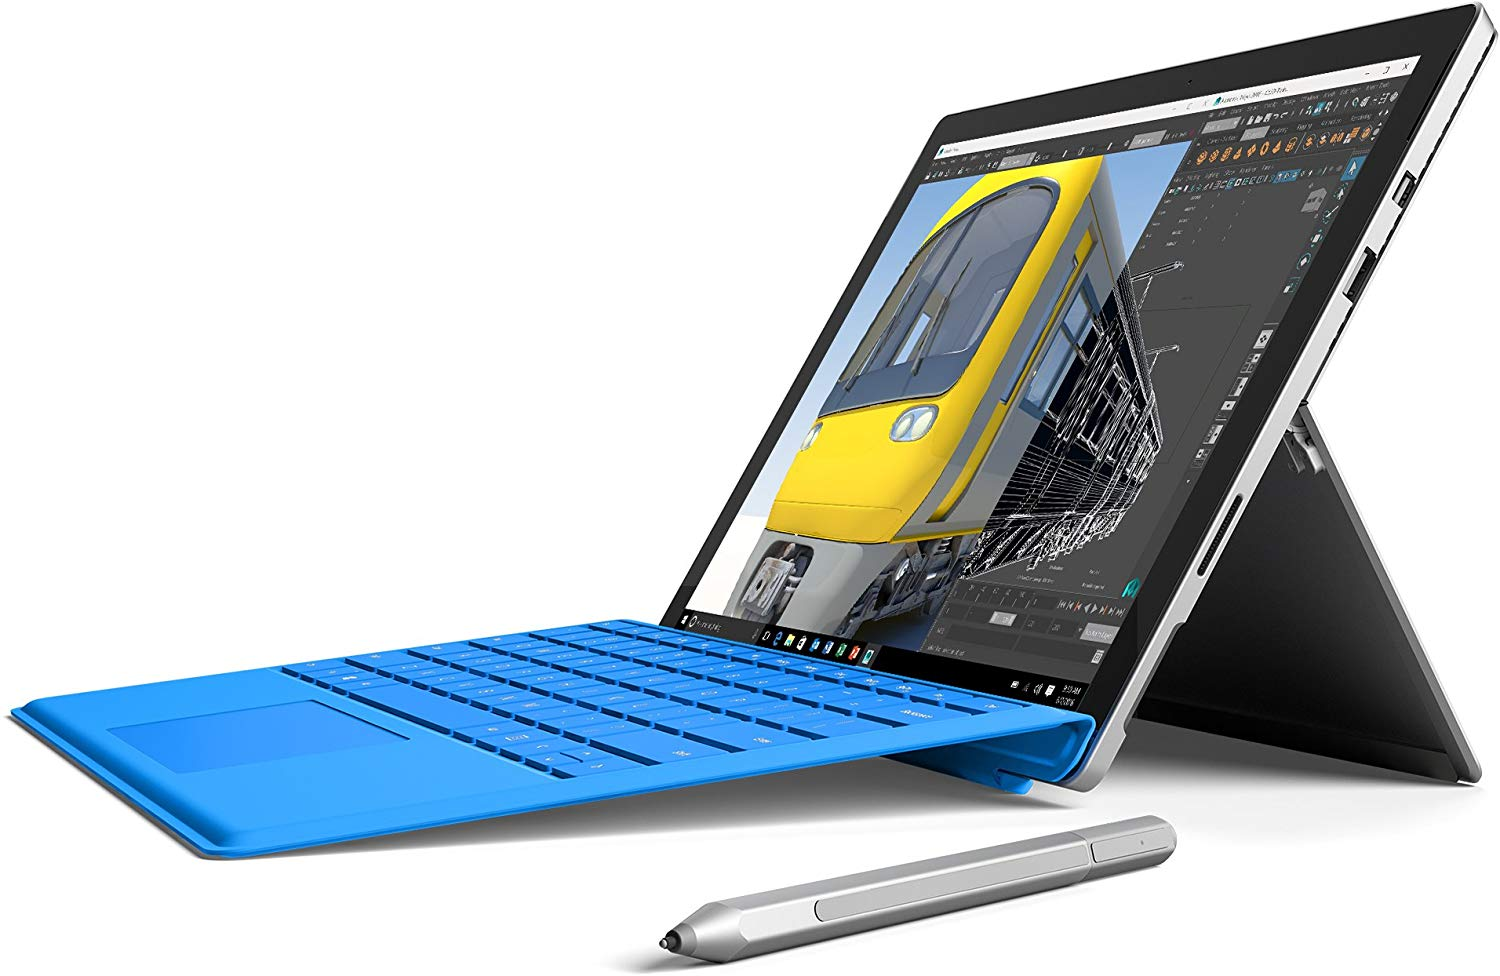 Surface Pro 4 Replacement Policy